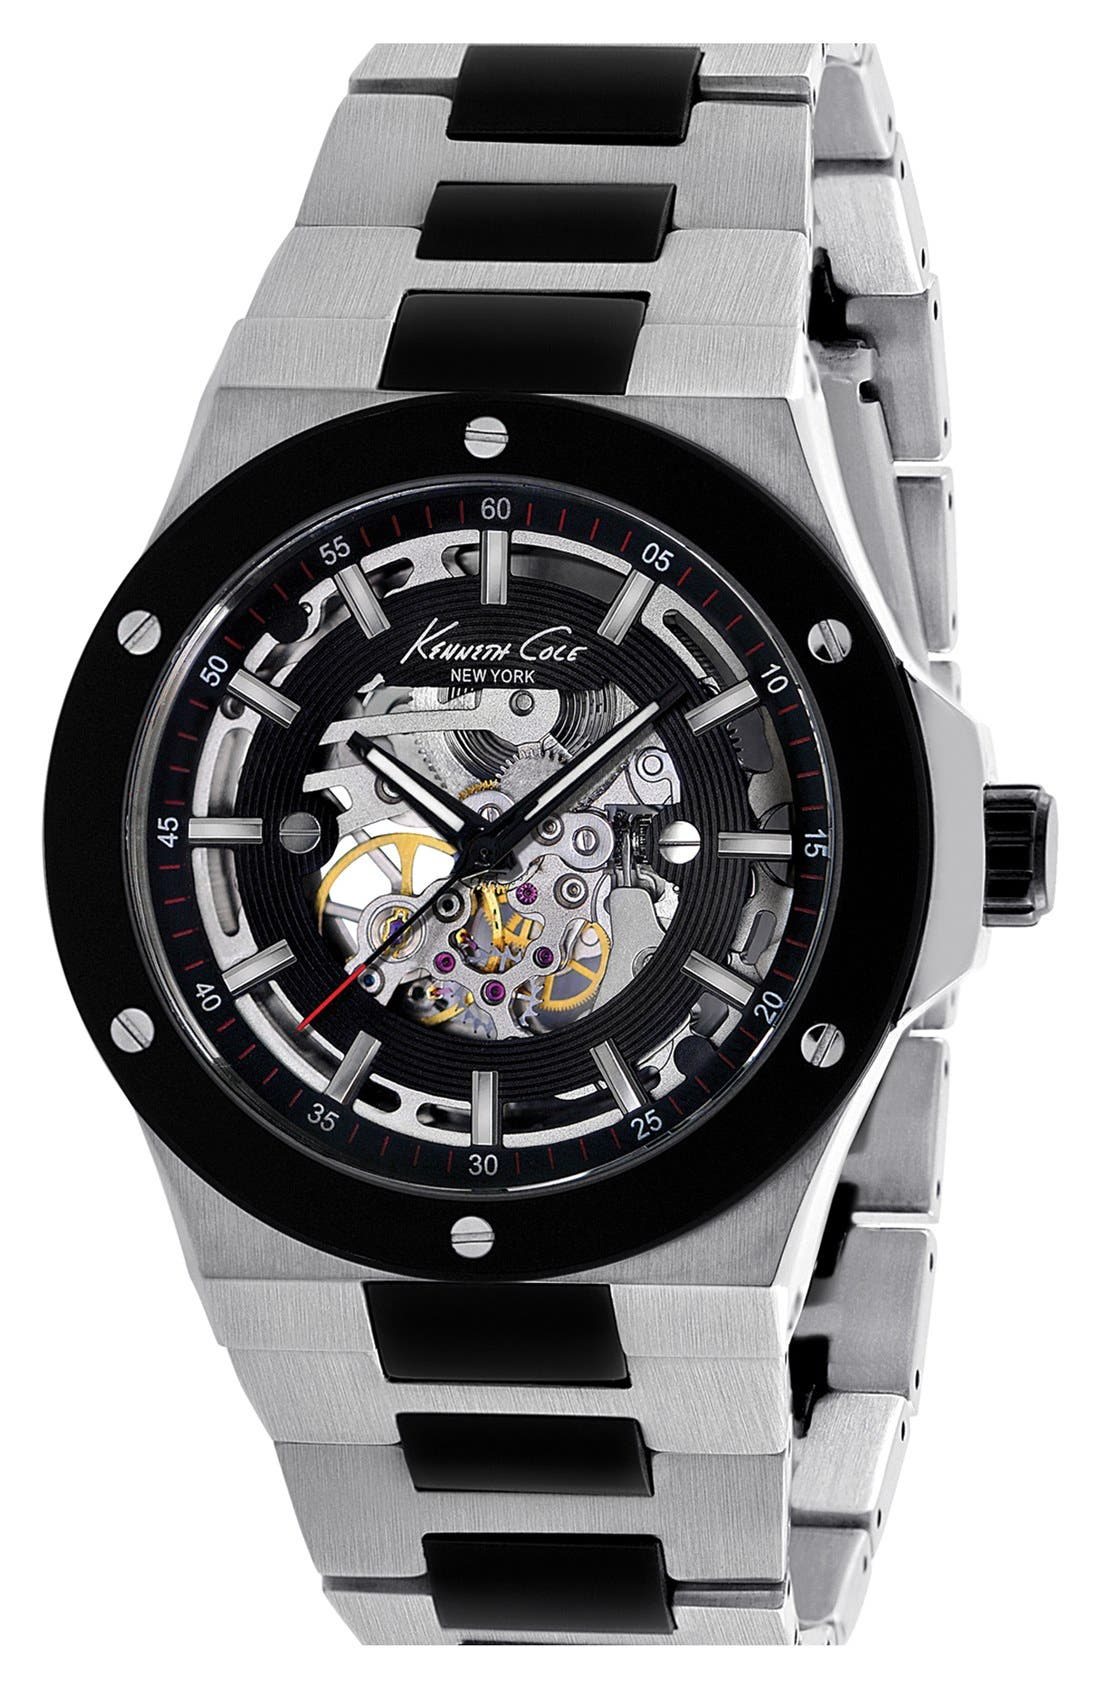 Main Image - Kenneth Cole New York Automatic Skeleton Dial Watch, 47mm ($250 Value)